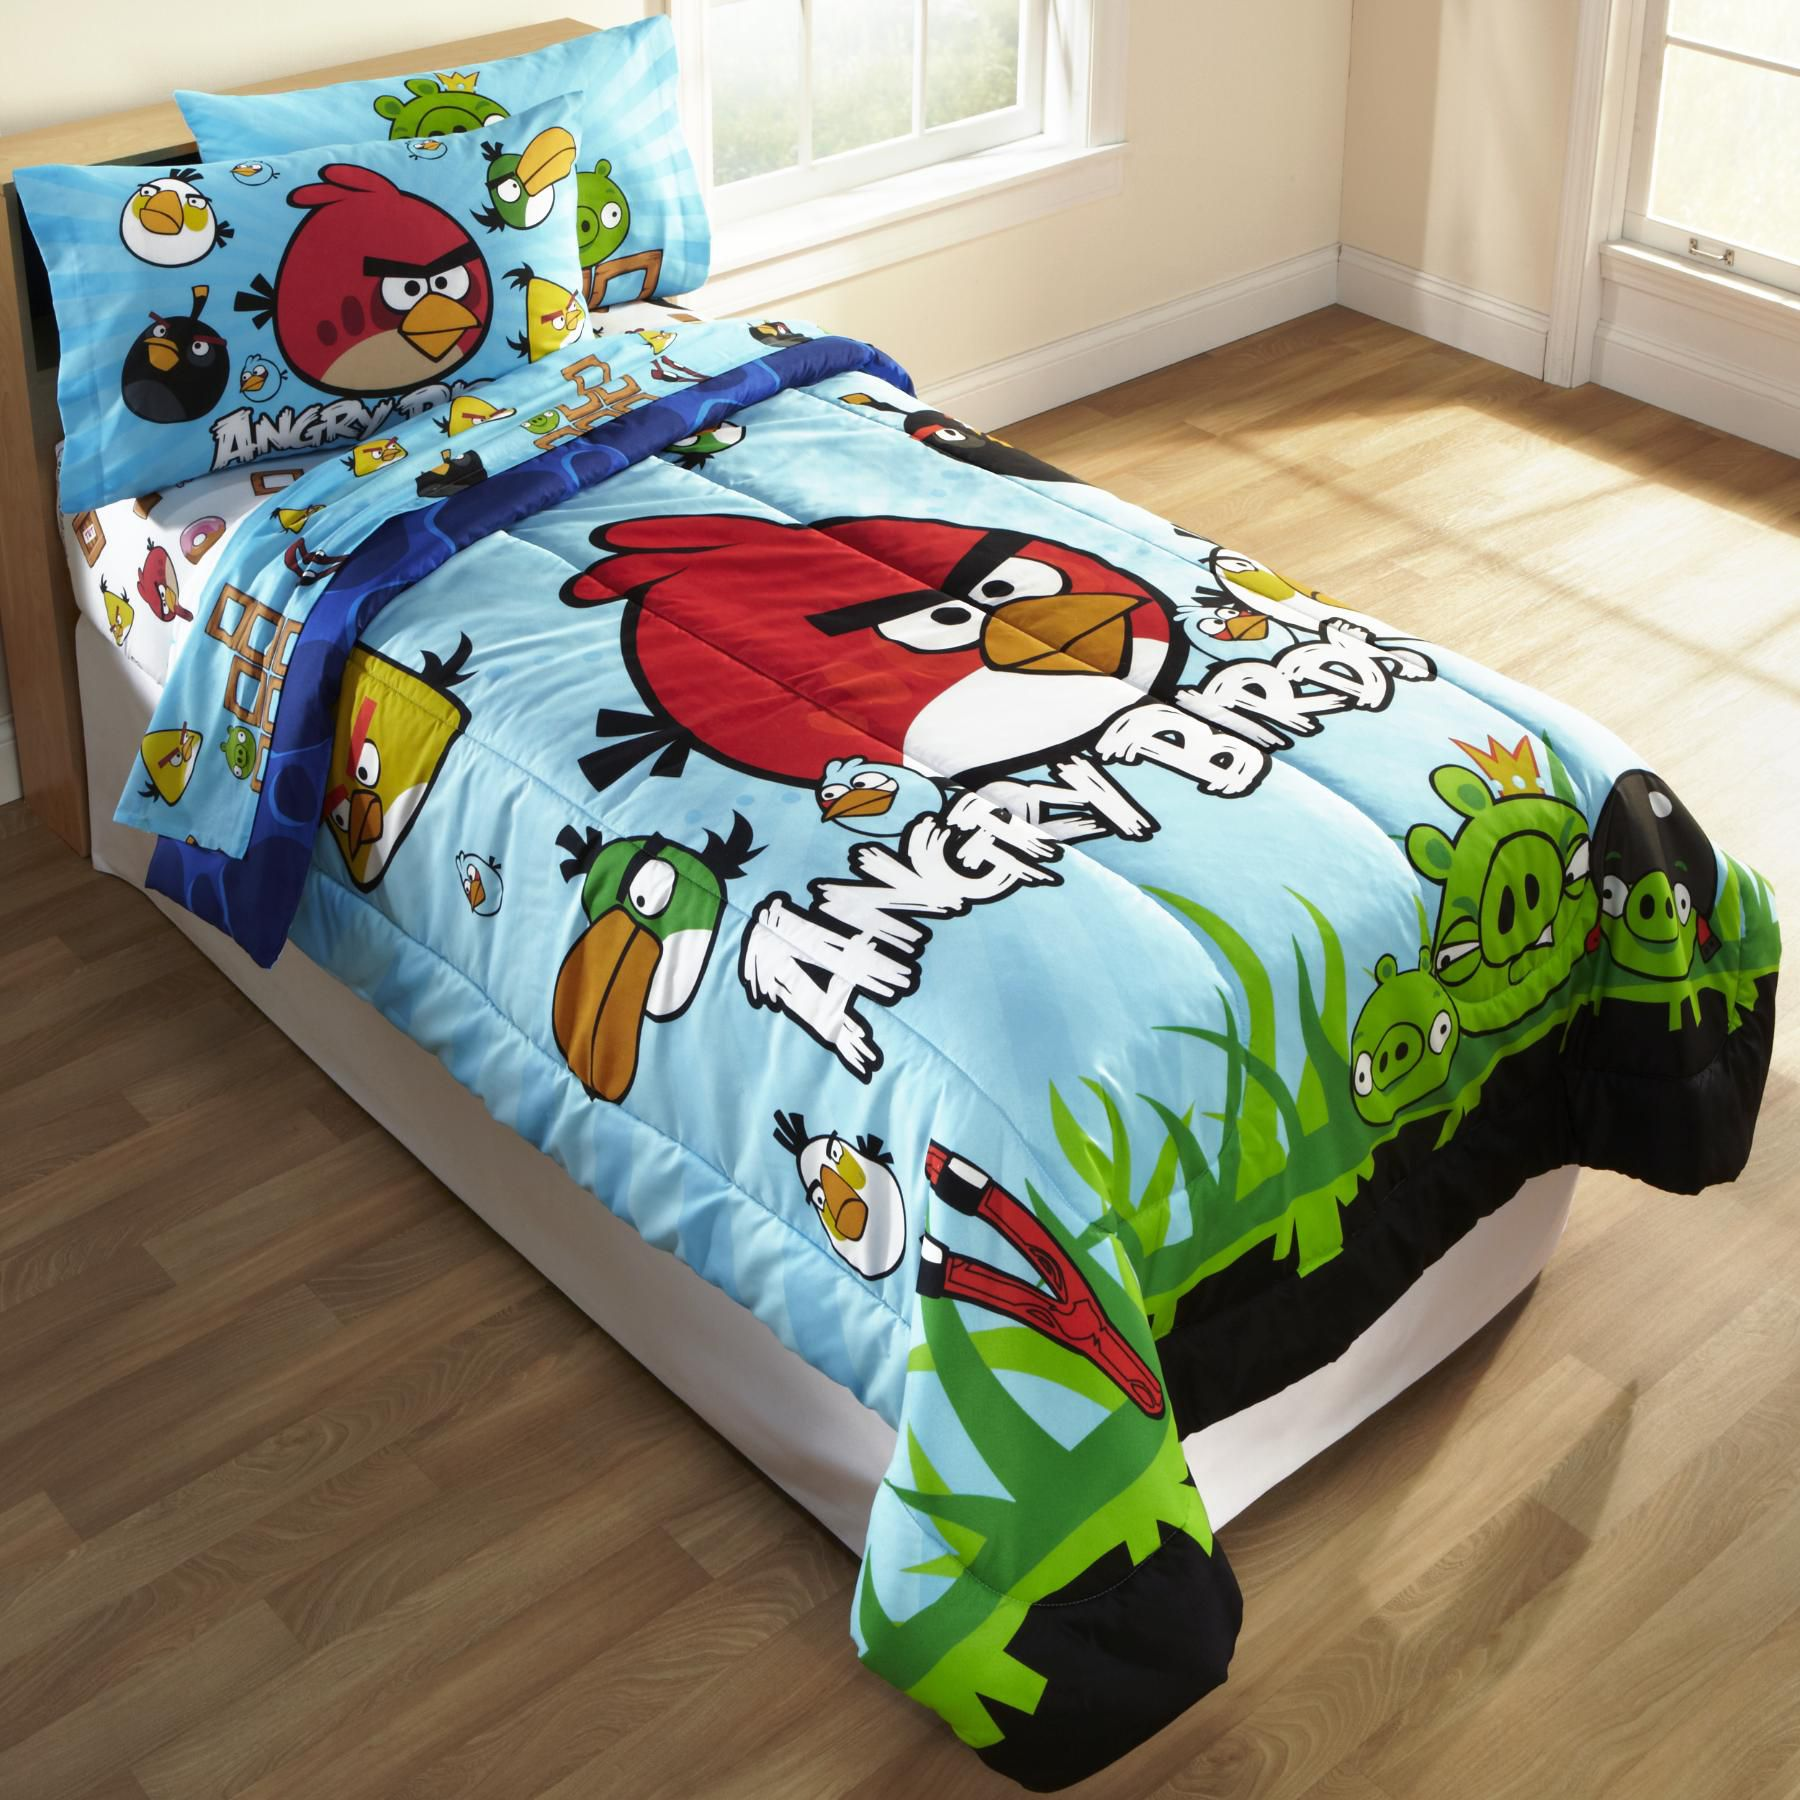 Child's Angry Birds Twin Comforter